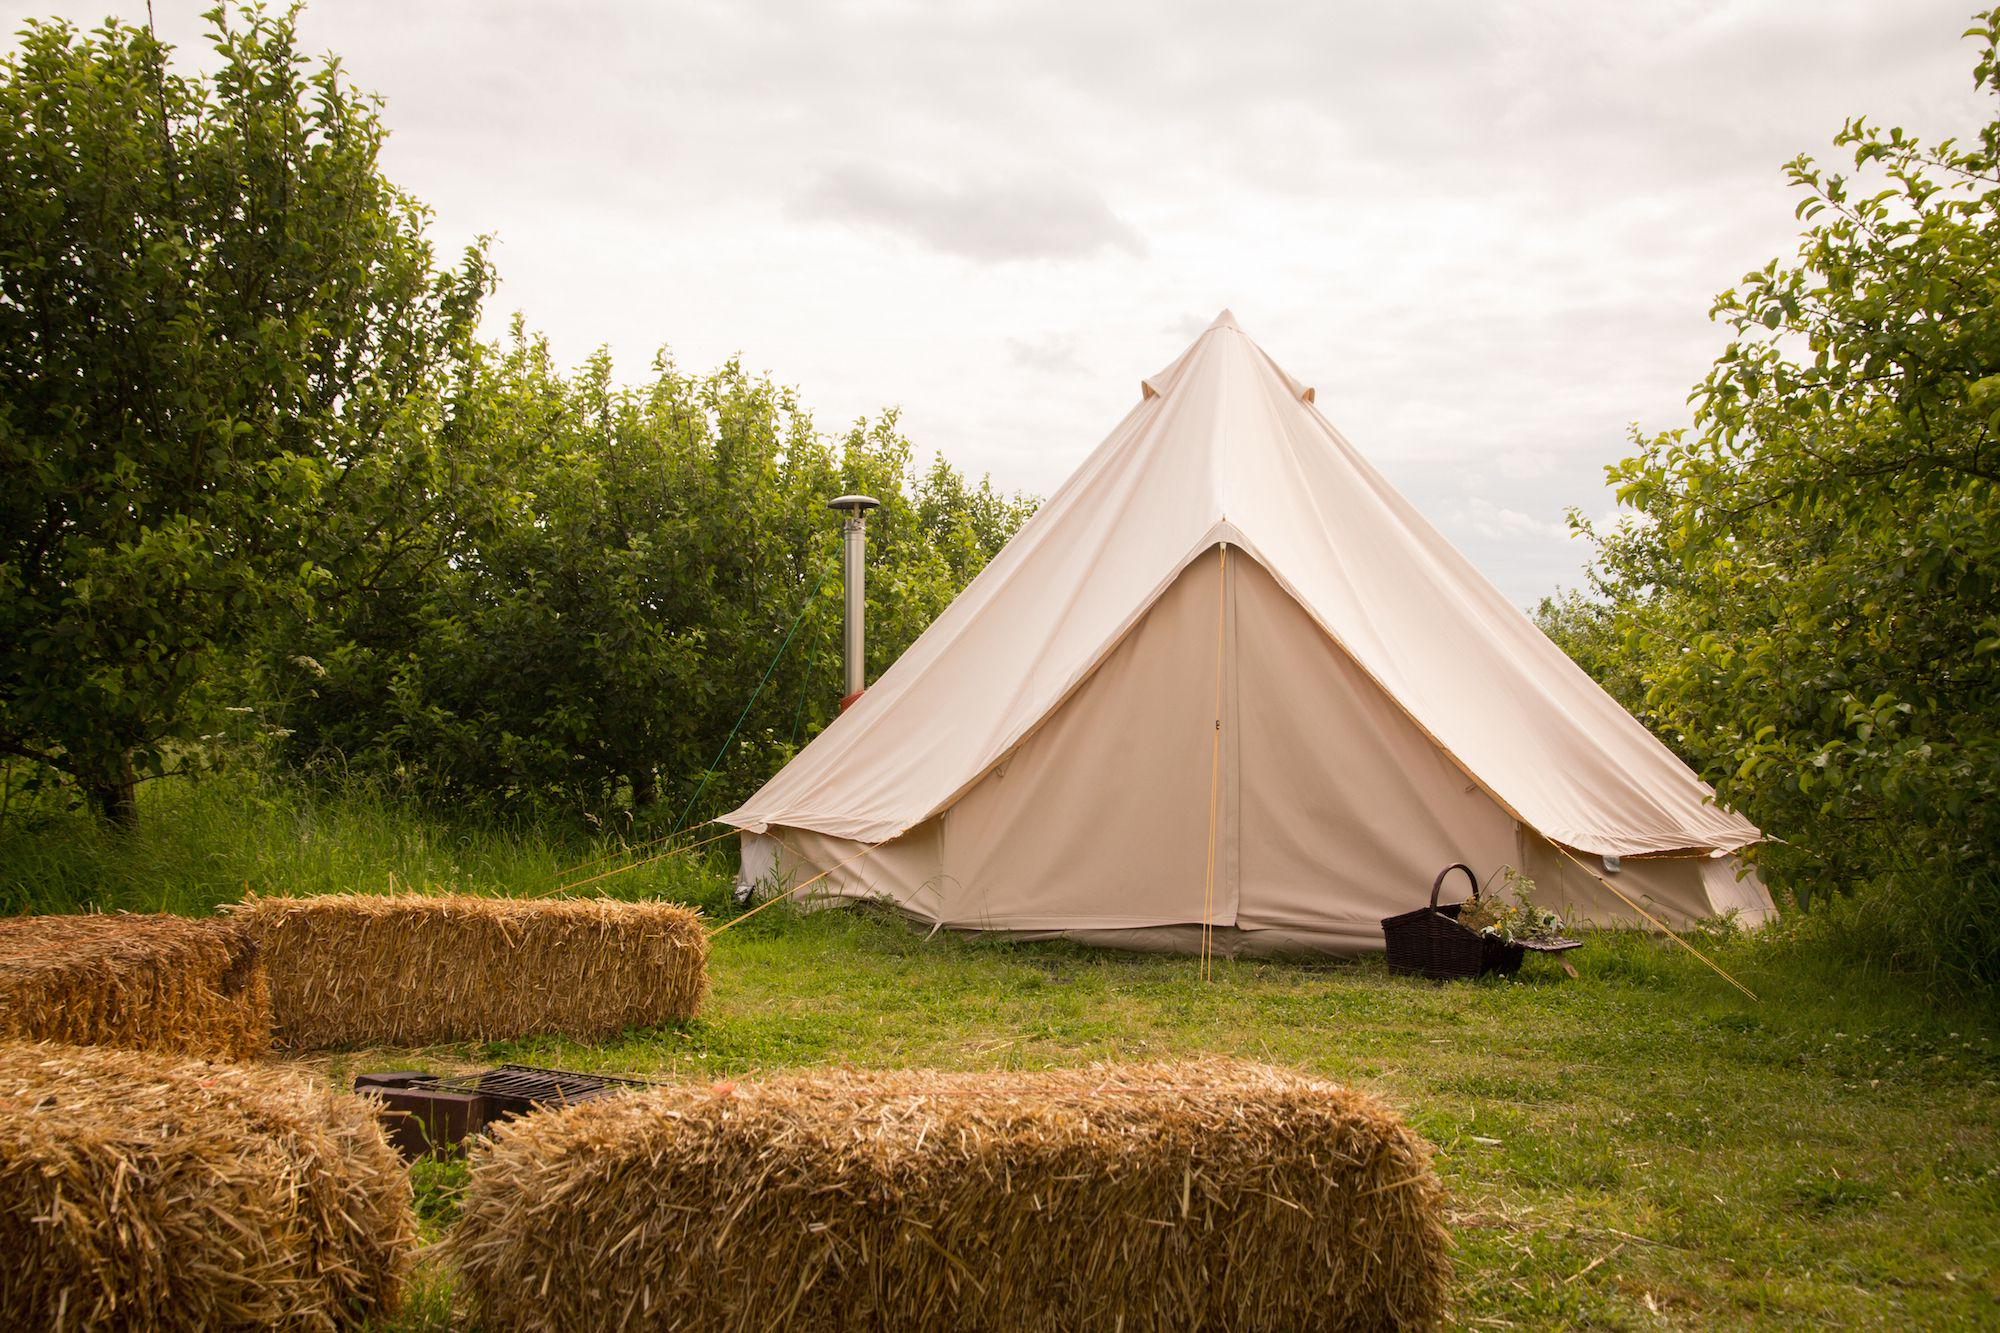 Ode To A Bell Tent A Poem By Penelope Lewis